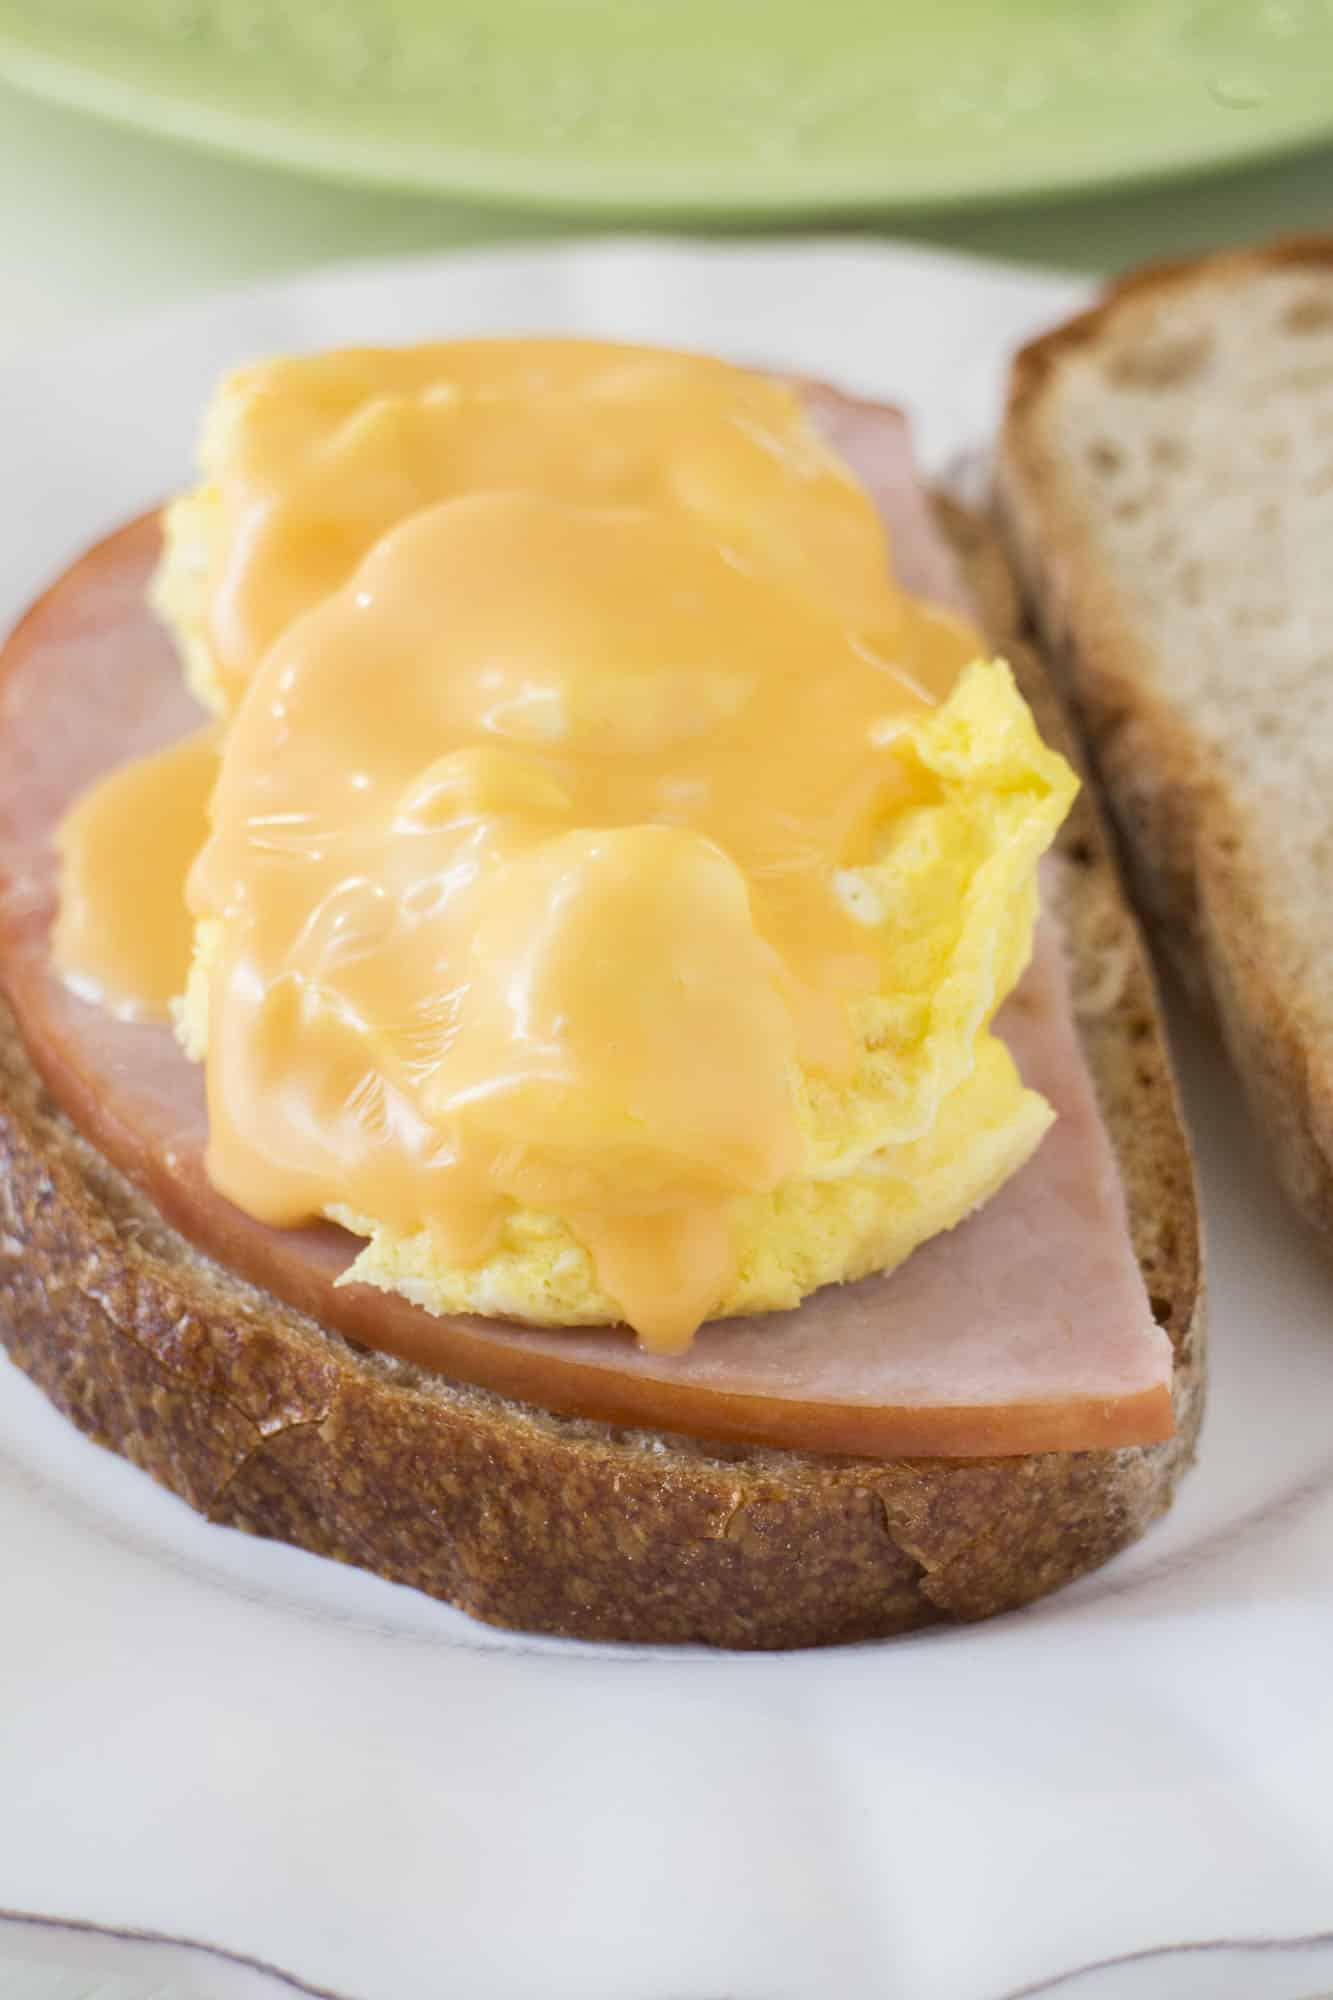 EASY, YUMMY breakfast sandwich made in 2 MINUTES! This Maple Syrup, Egg, Ham and Cheese Sandwich recipe is great for a quick breakfast! You can freeze the sandwiches to make ahead too! They taste like french toast to me!